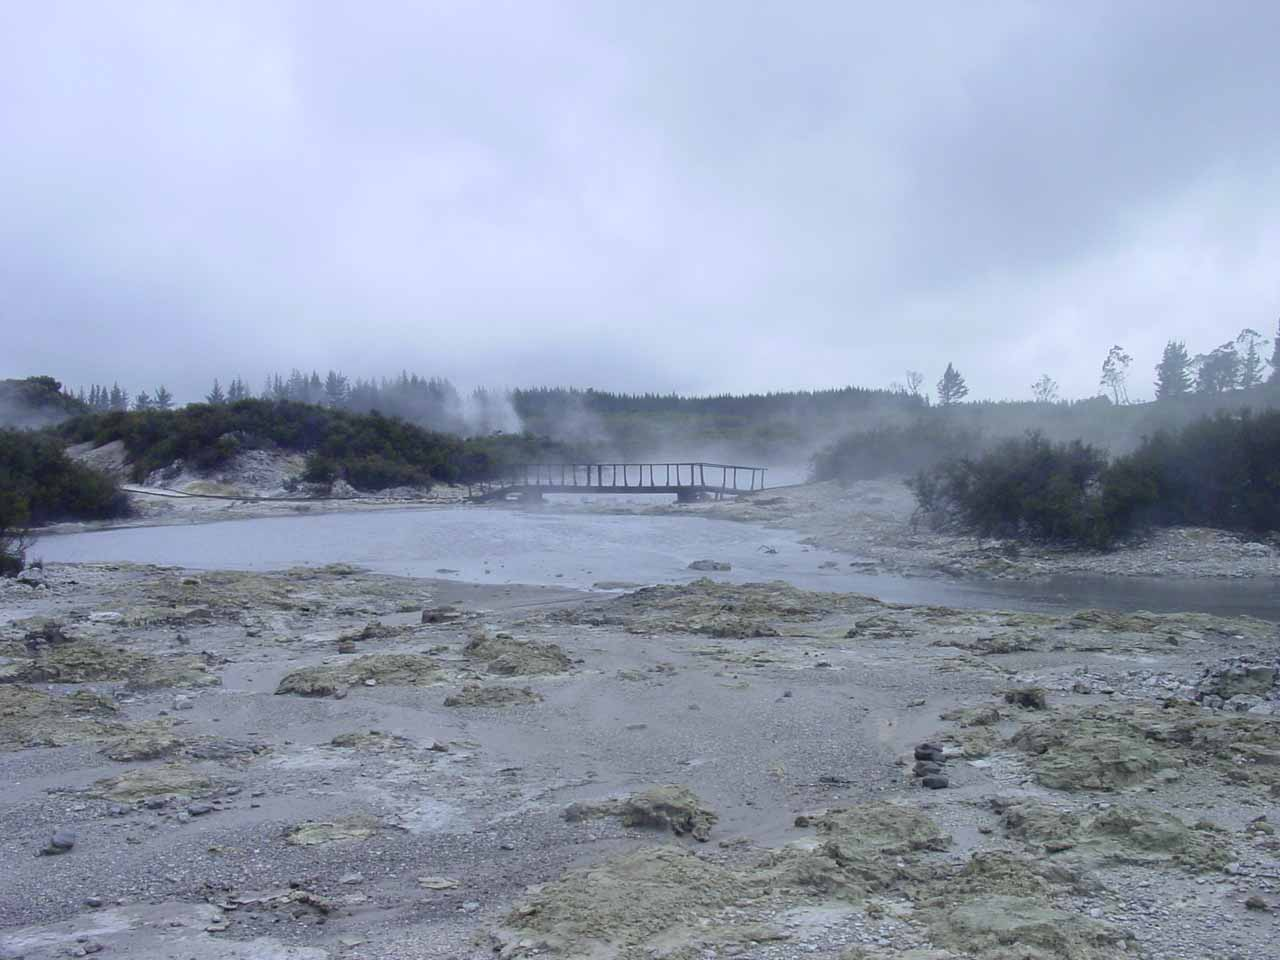 The thermal reserve we visited immediately after our Tarawera Falls excursion was Hell's Gate, which was said to be the most geothermically active reserve in the Rotorua Area